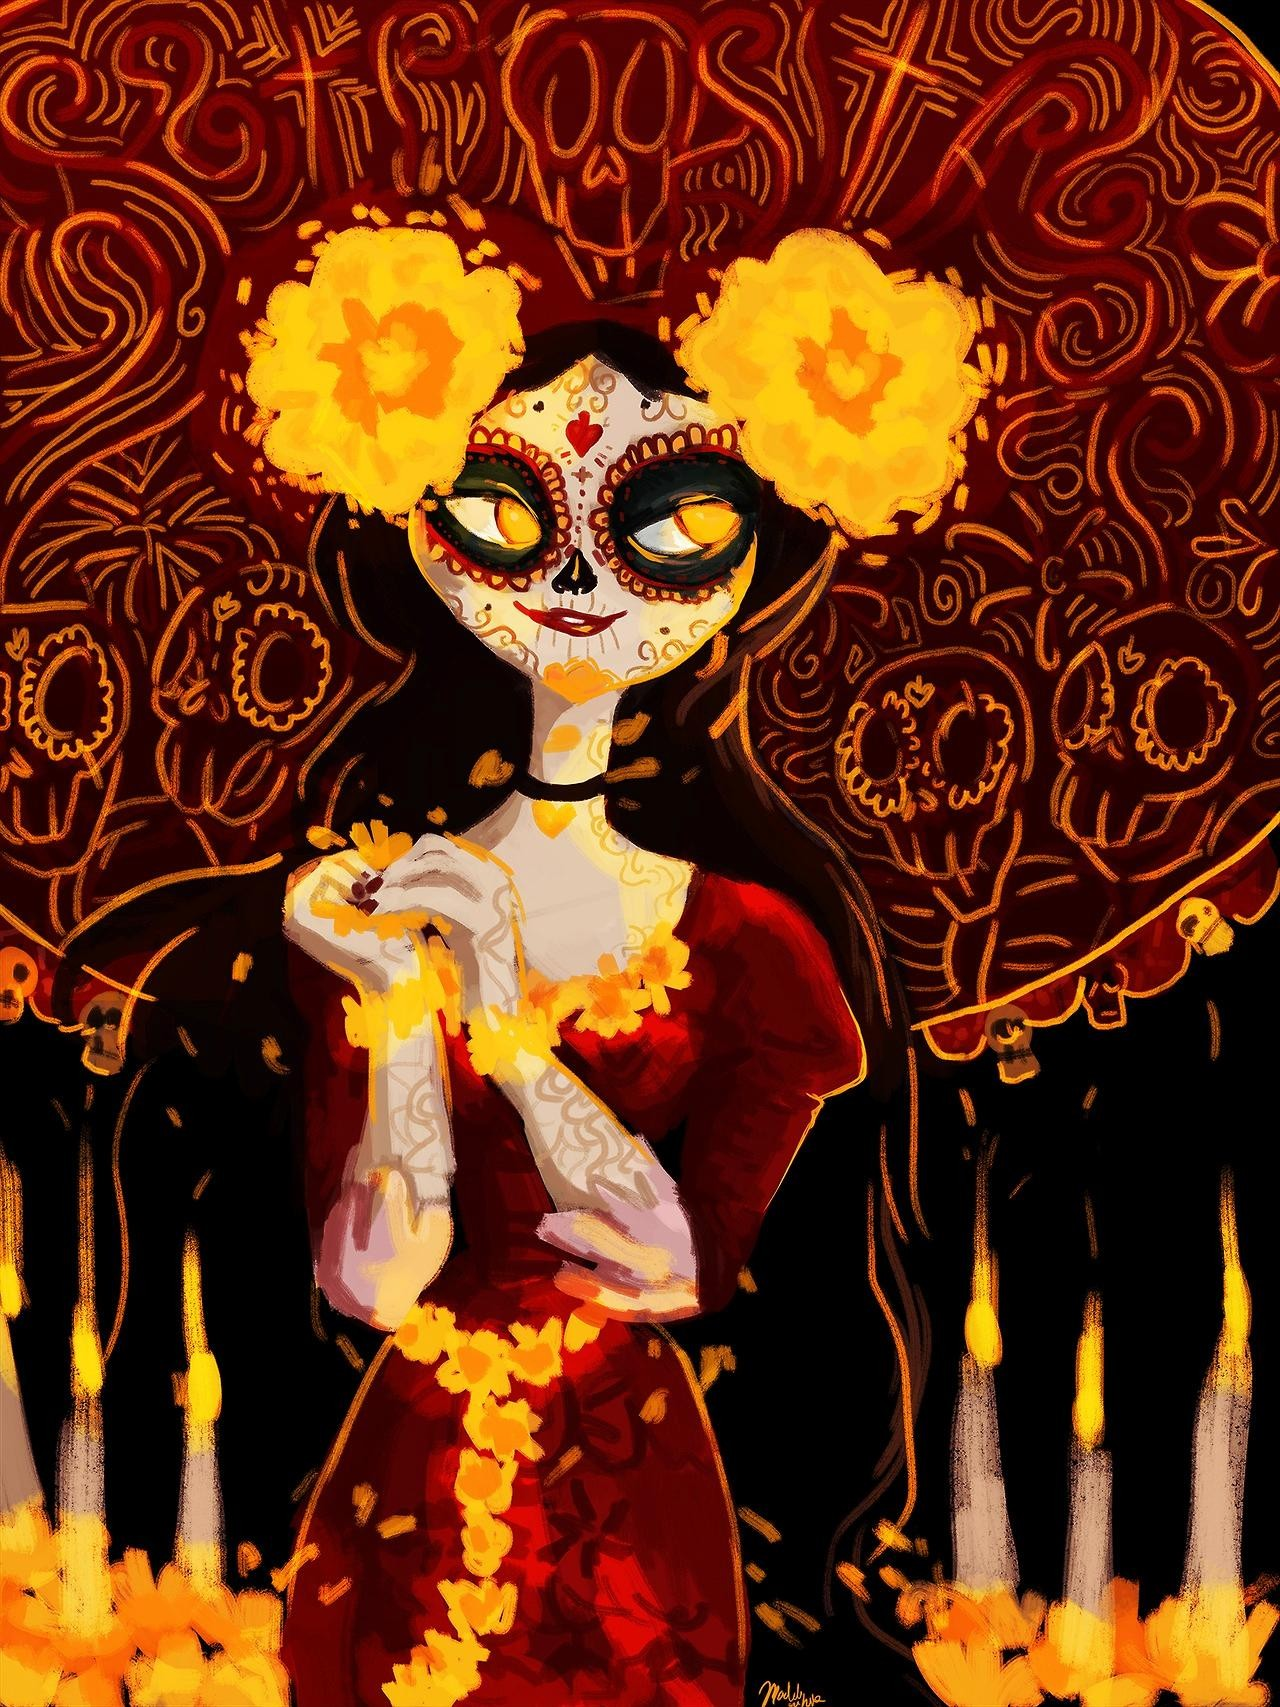 El Libro De La Vida Catrina Screened Out The Book Of Life Watermark Online